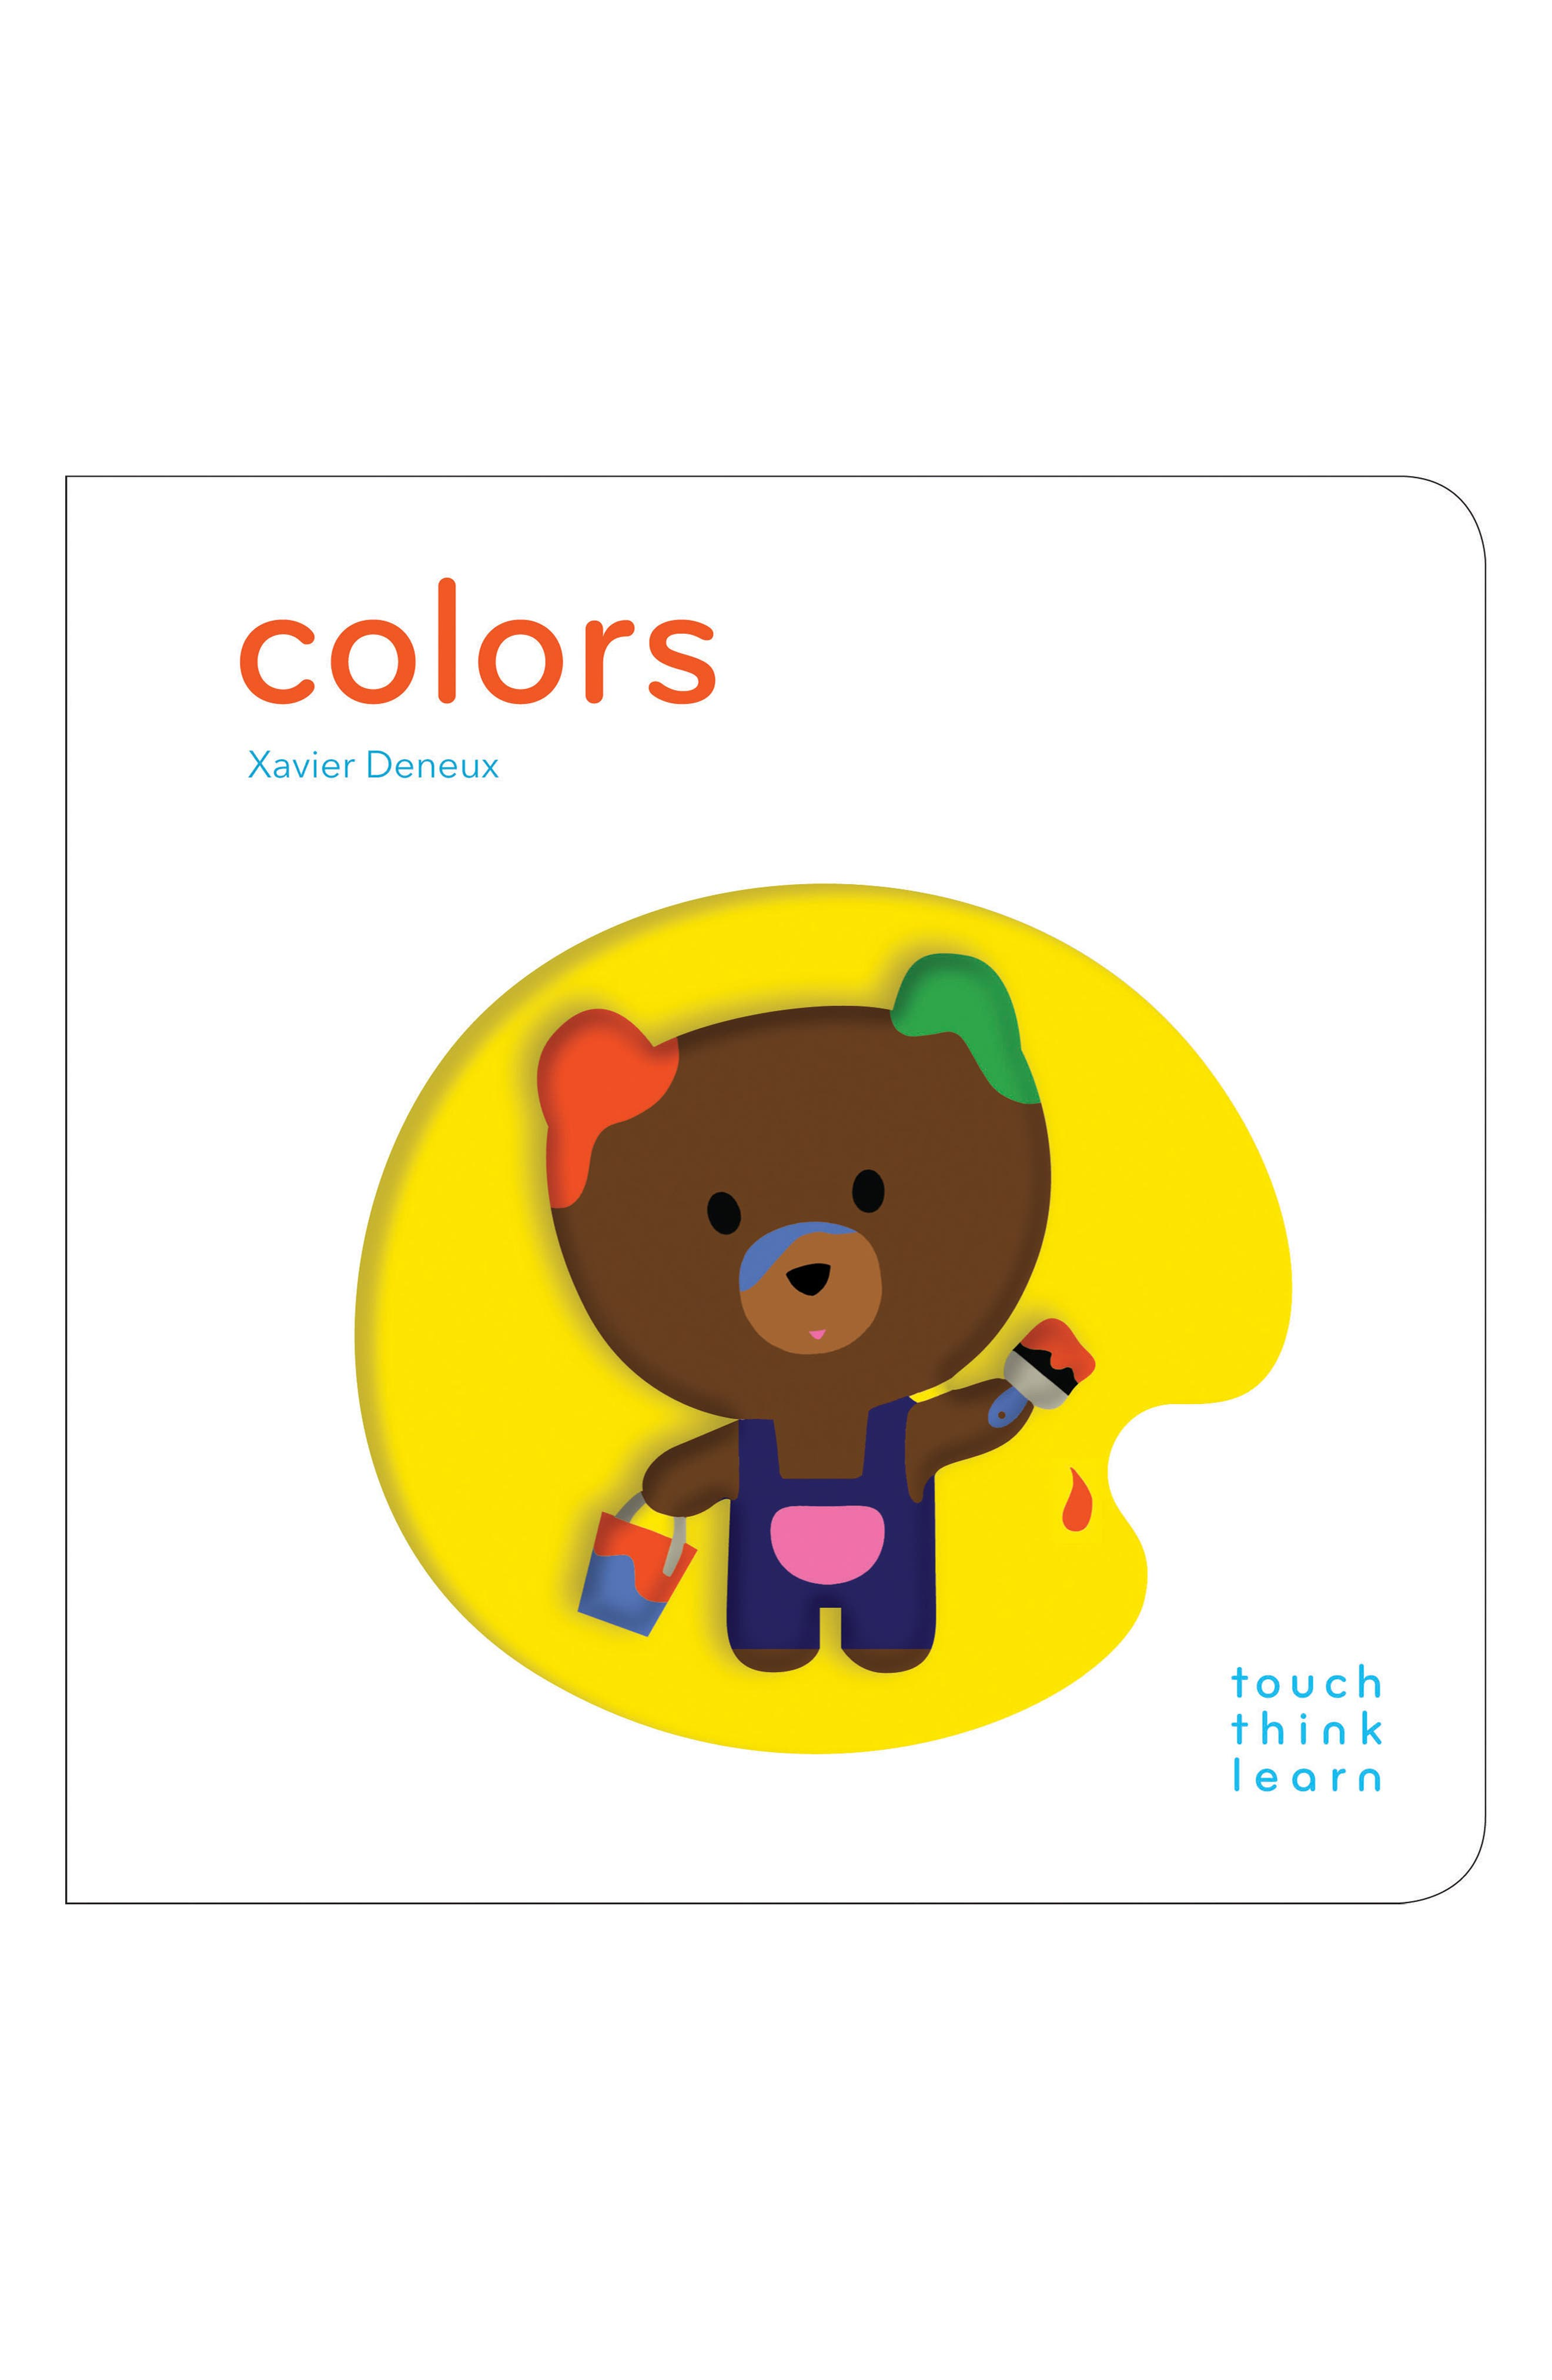 ISBN 9781452117263 product image for 'Touchthinklearn: Colors' Board Book | upcitemdb.com